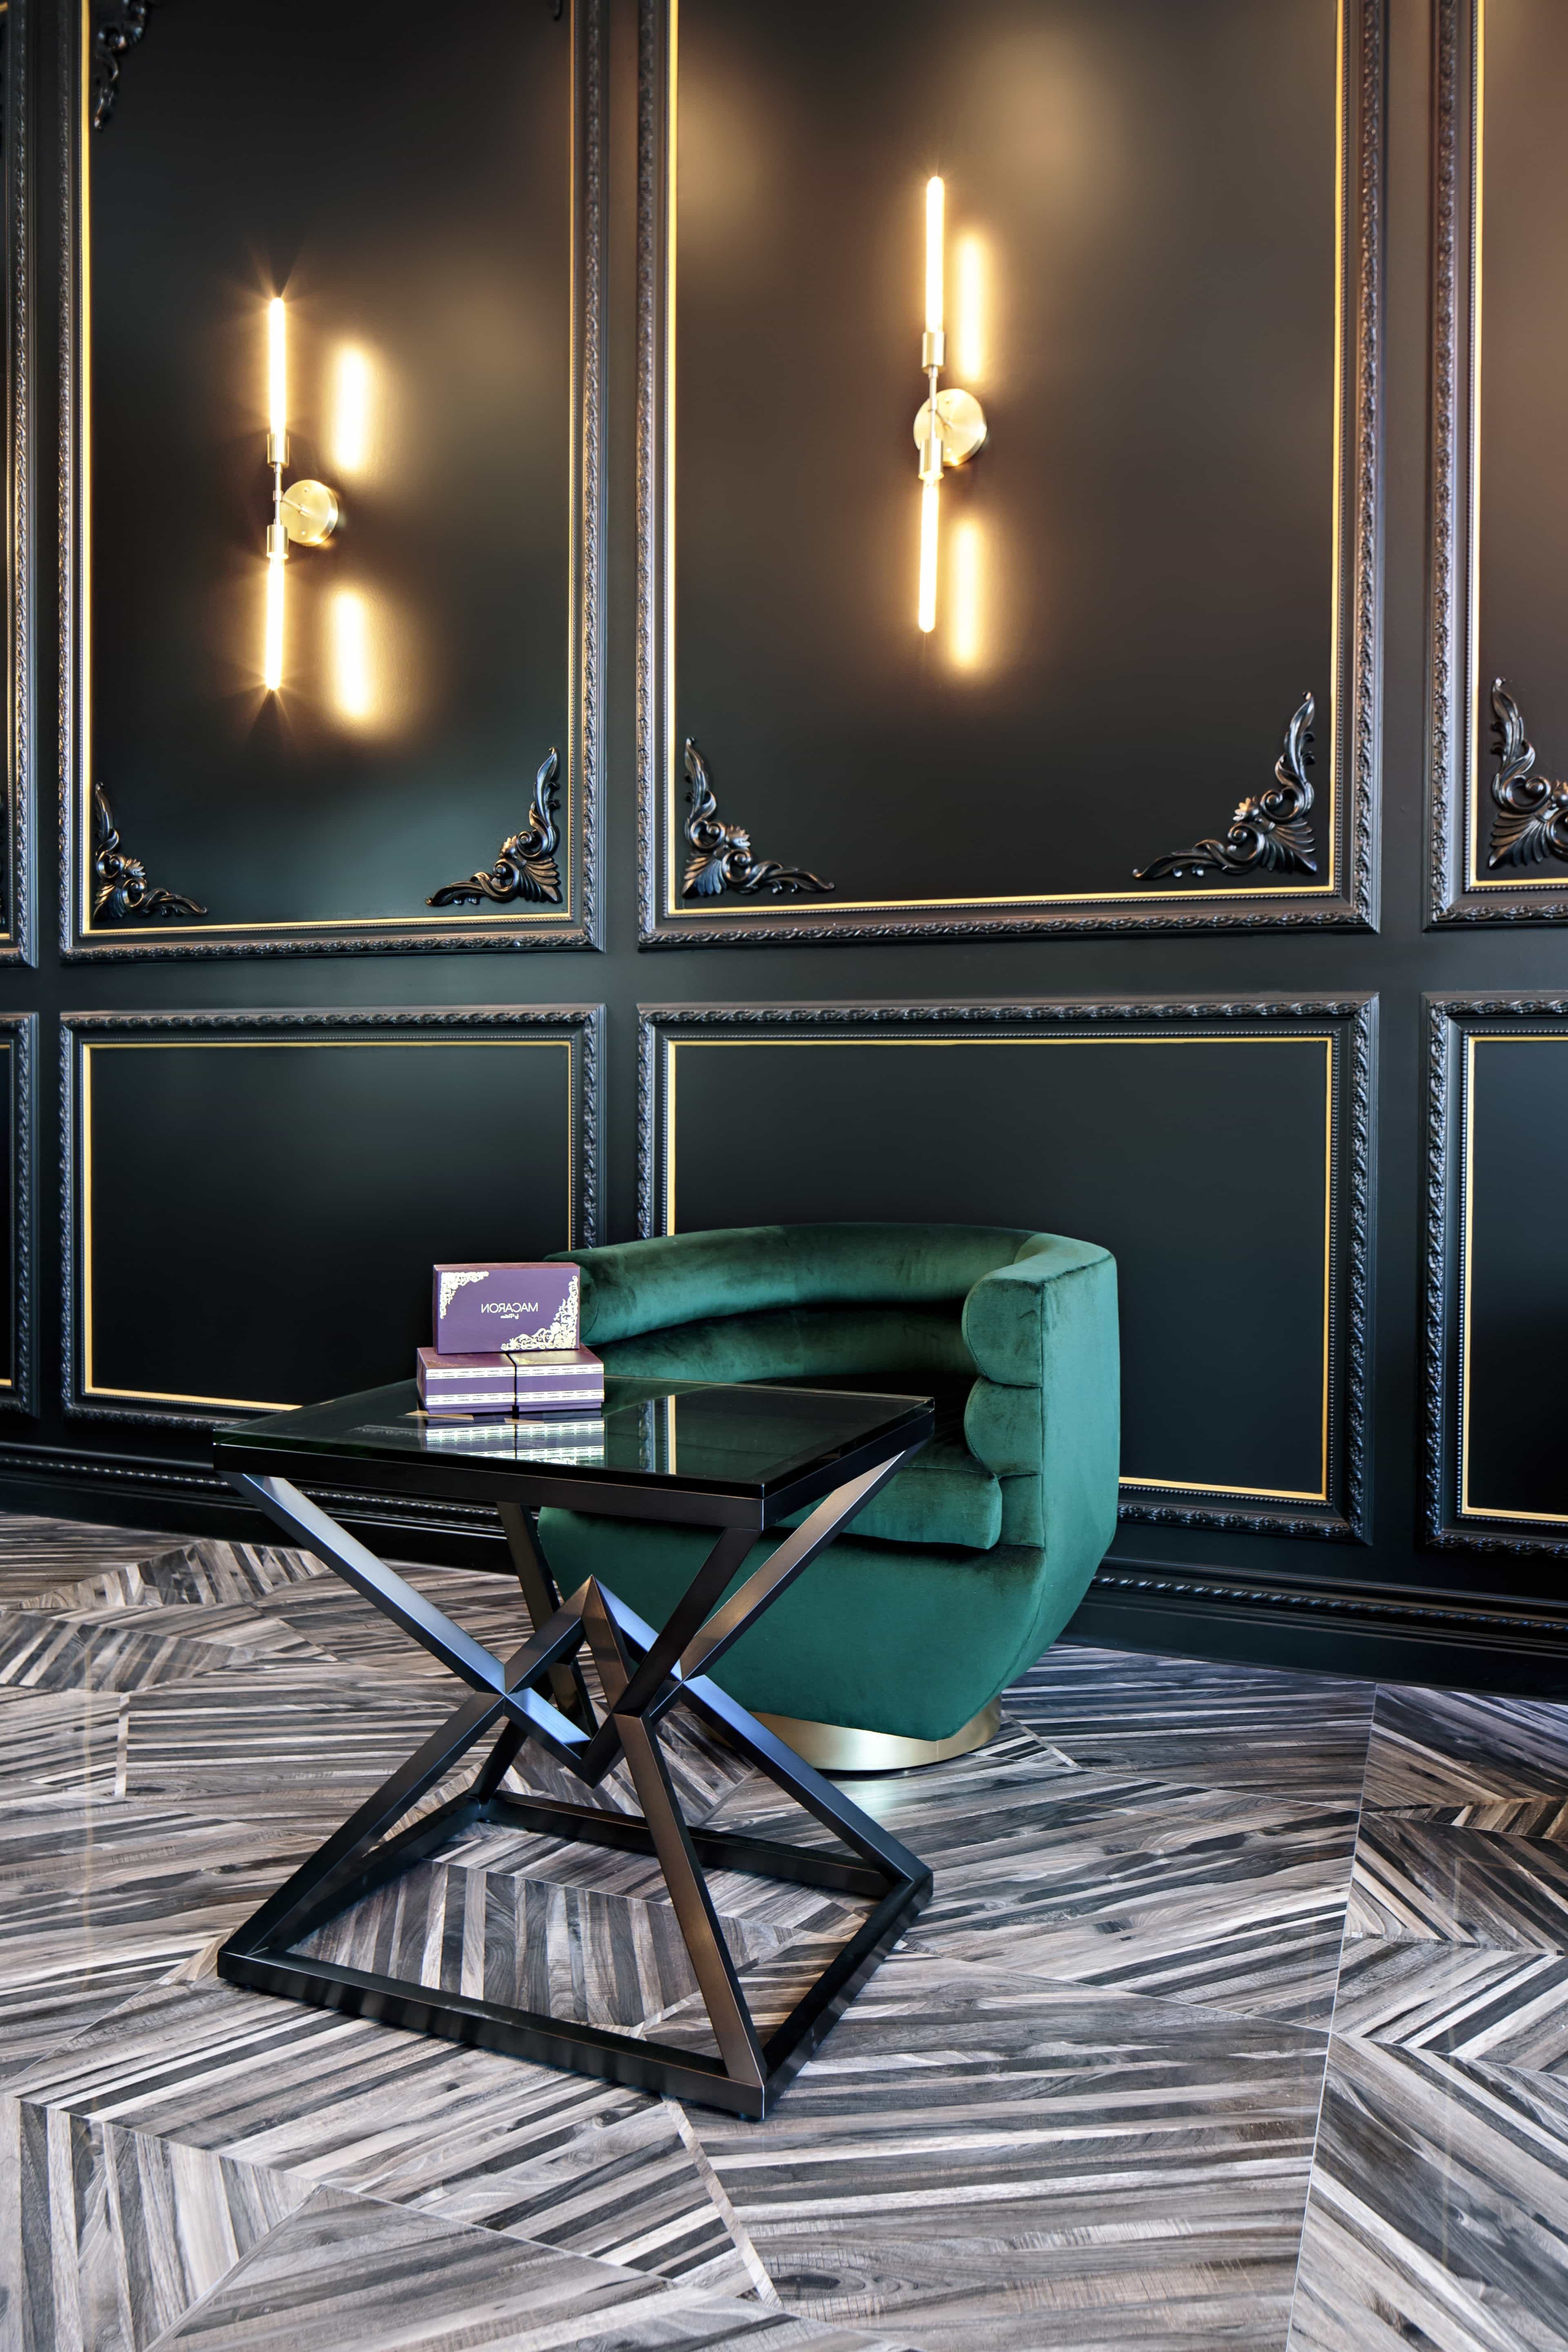 Featured Image of Gothic Sitting Space With Black Wall Panelling And Prism Coffee Table